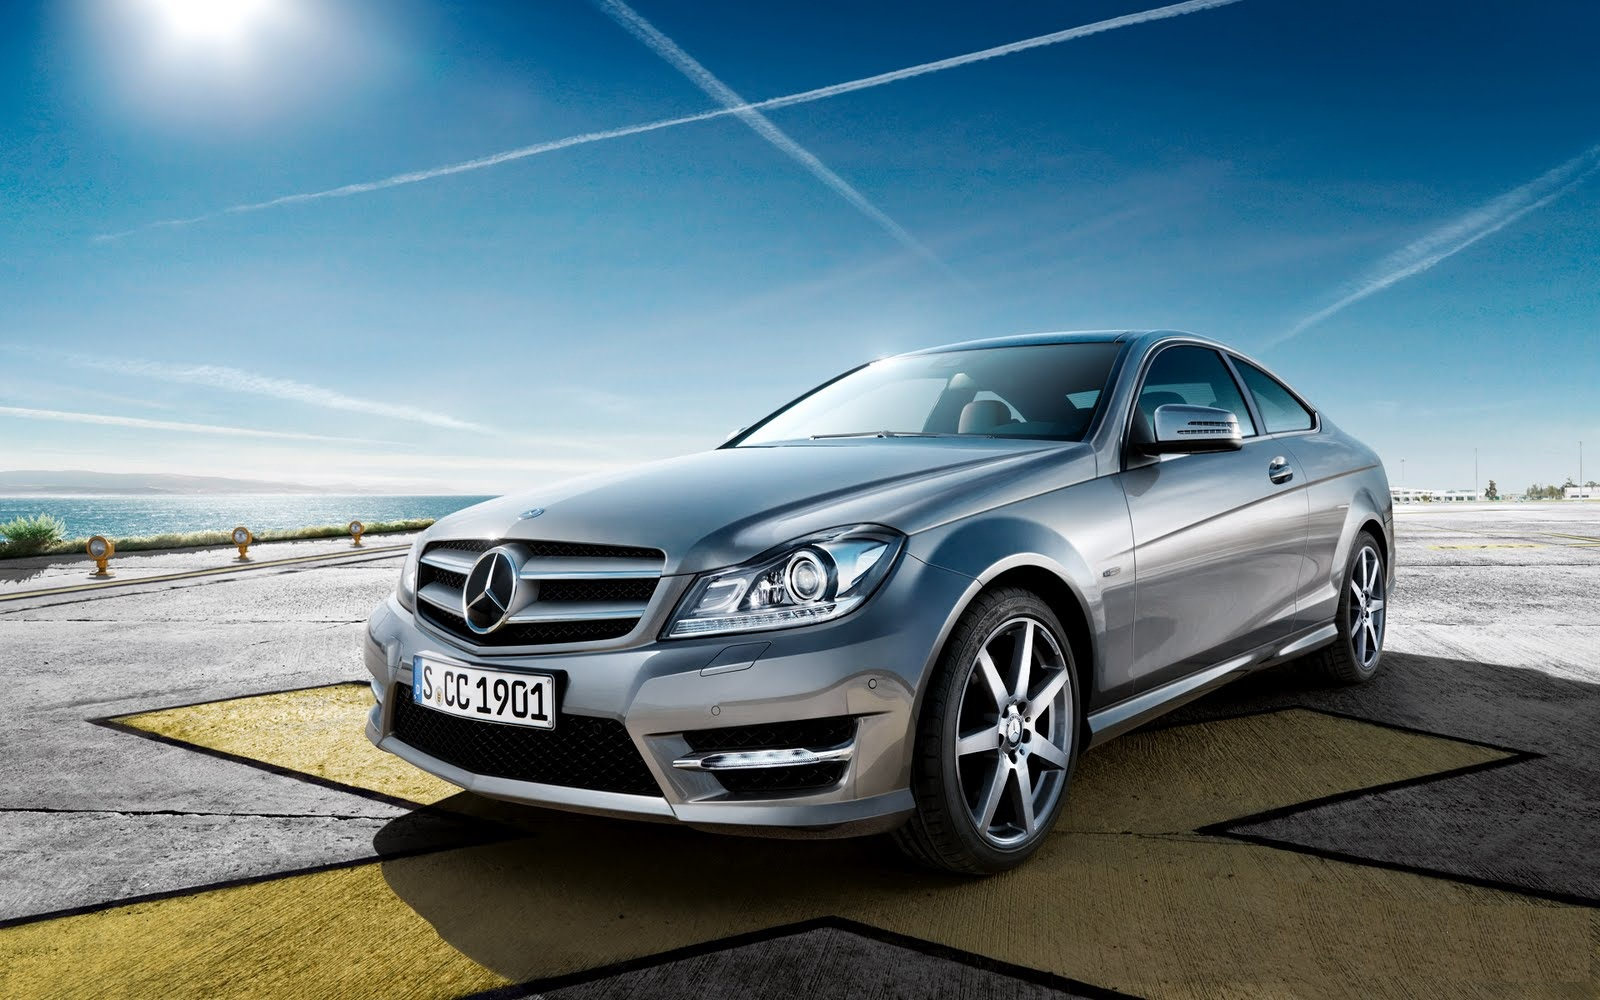 Mercedes Benz Cars Price List Malaysia 2015 Surfolks